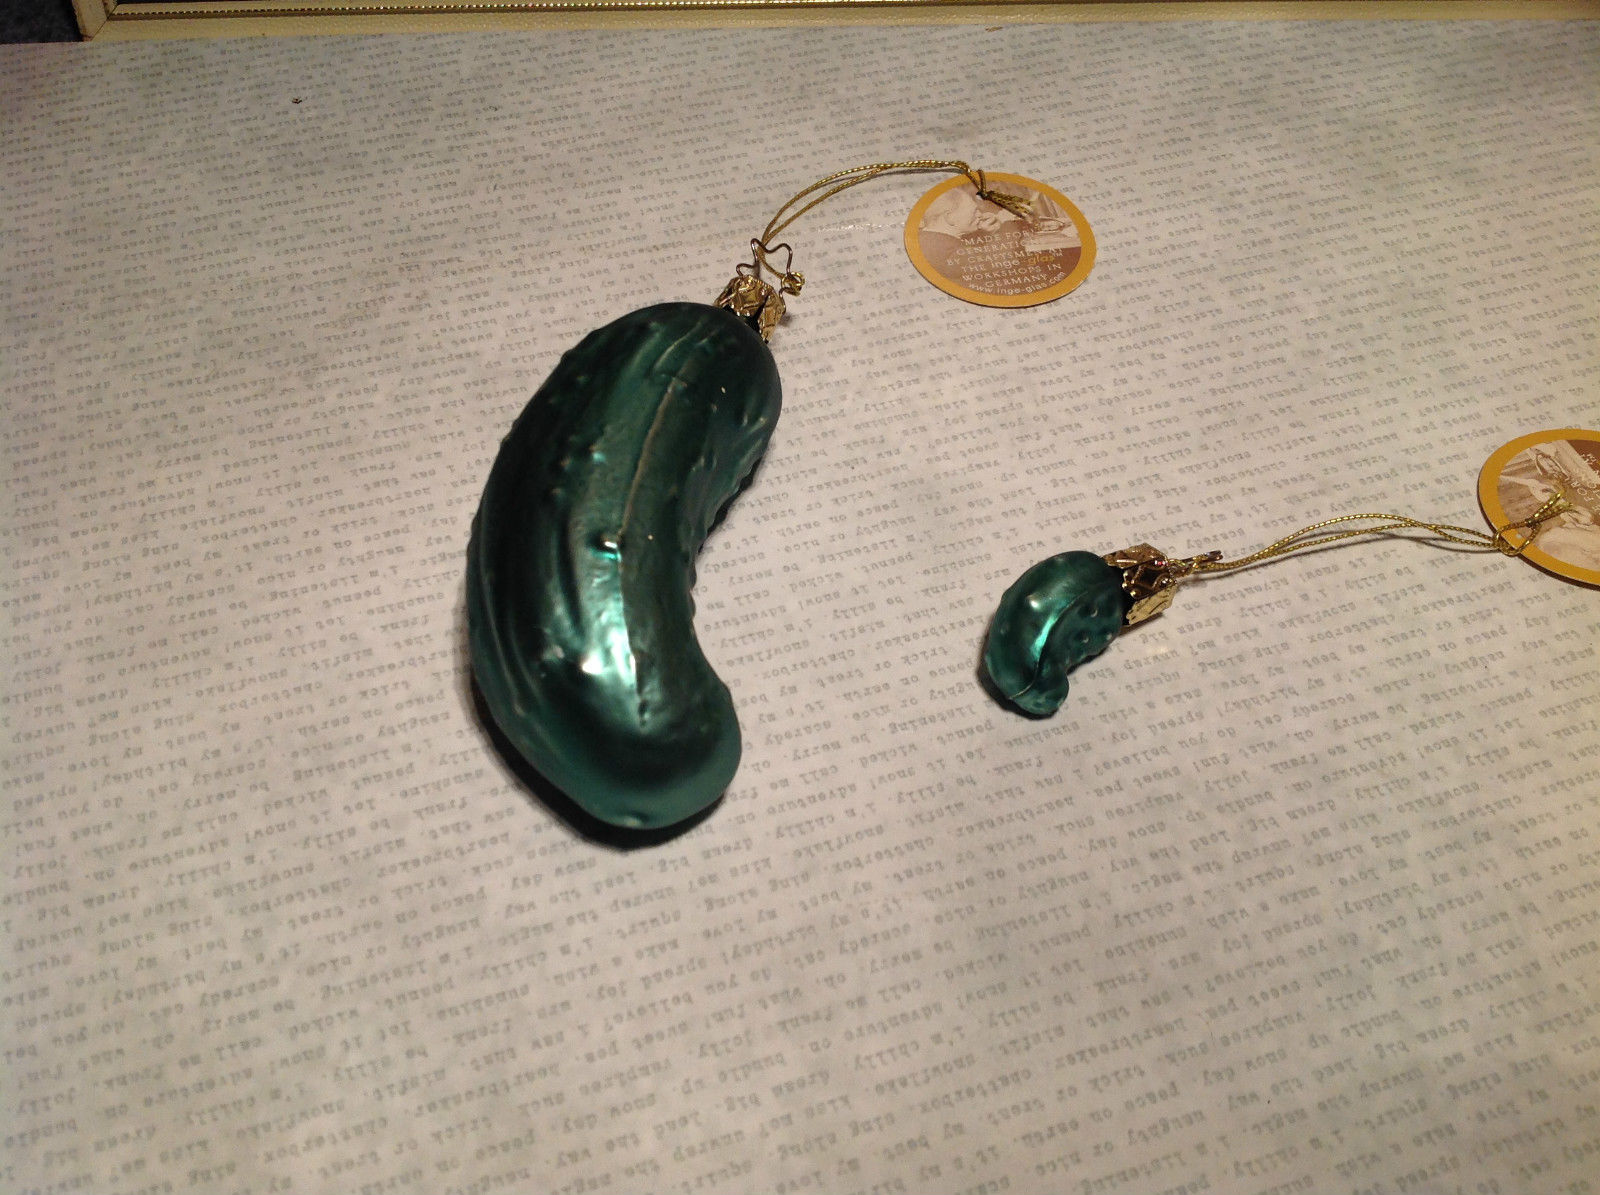 Handmade German 2 Piece Pickle Ornament Set Quality Heirloom